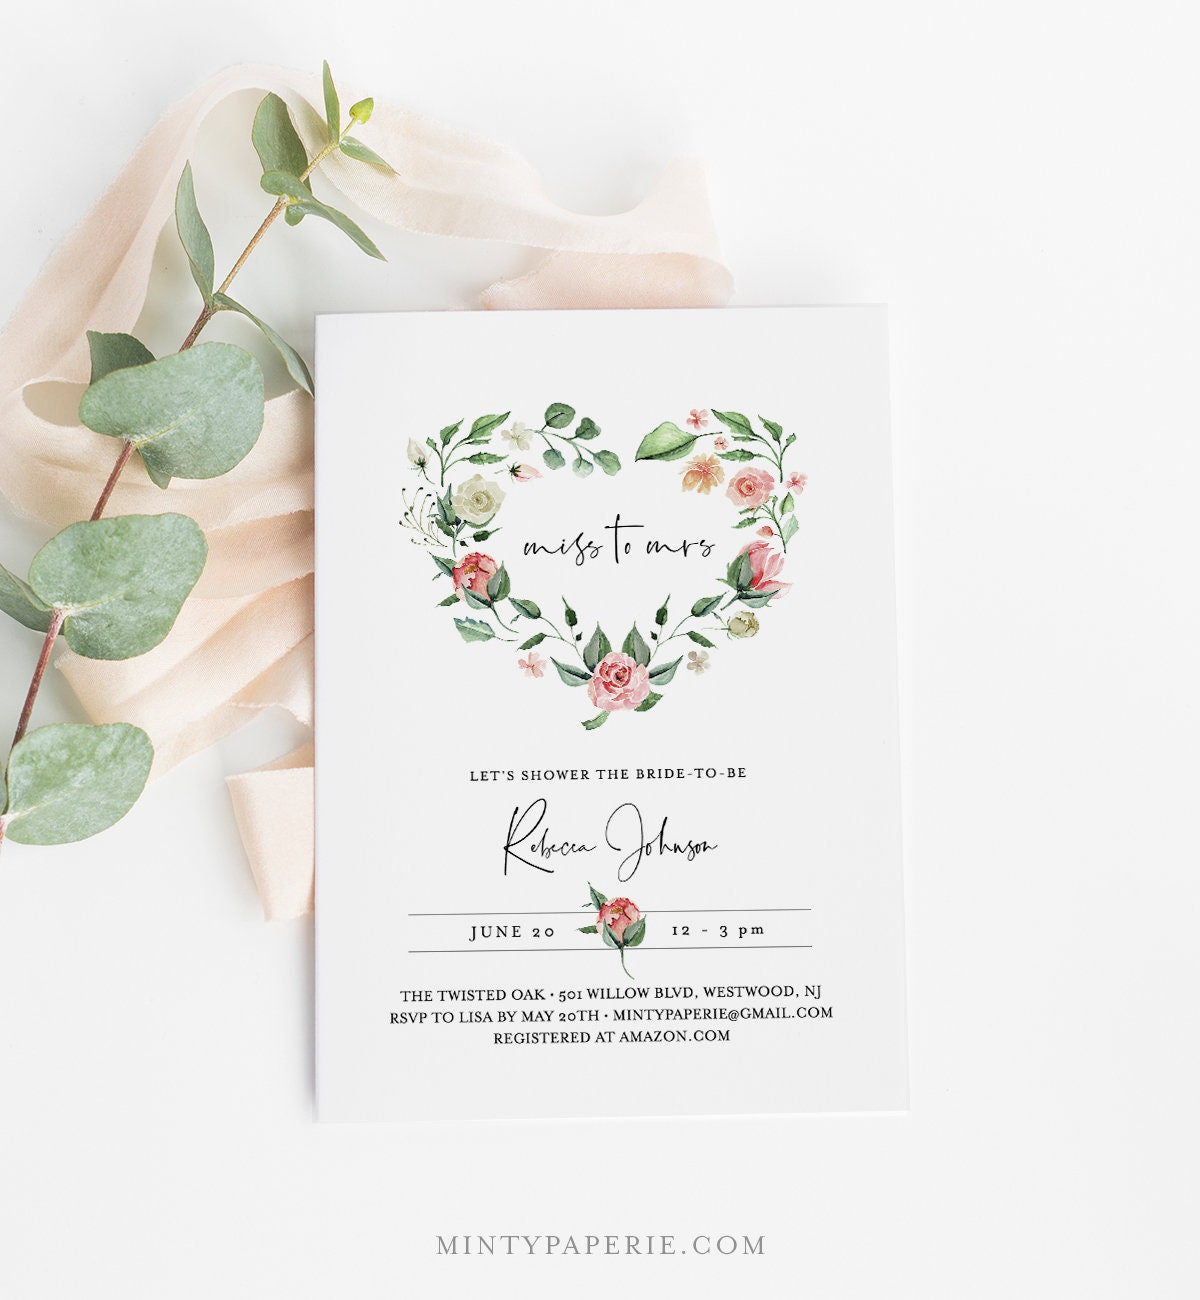 Valentine Bridal Shower Invitation and Thank You Card with Rustic Heart Wreath